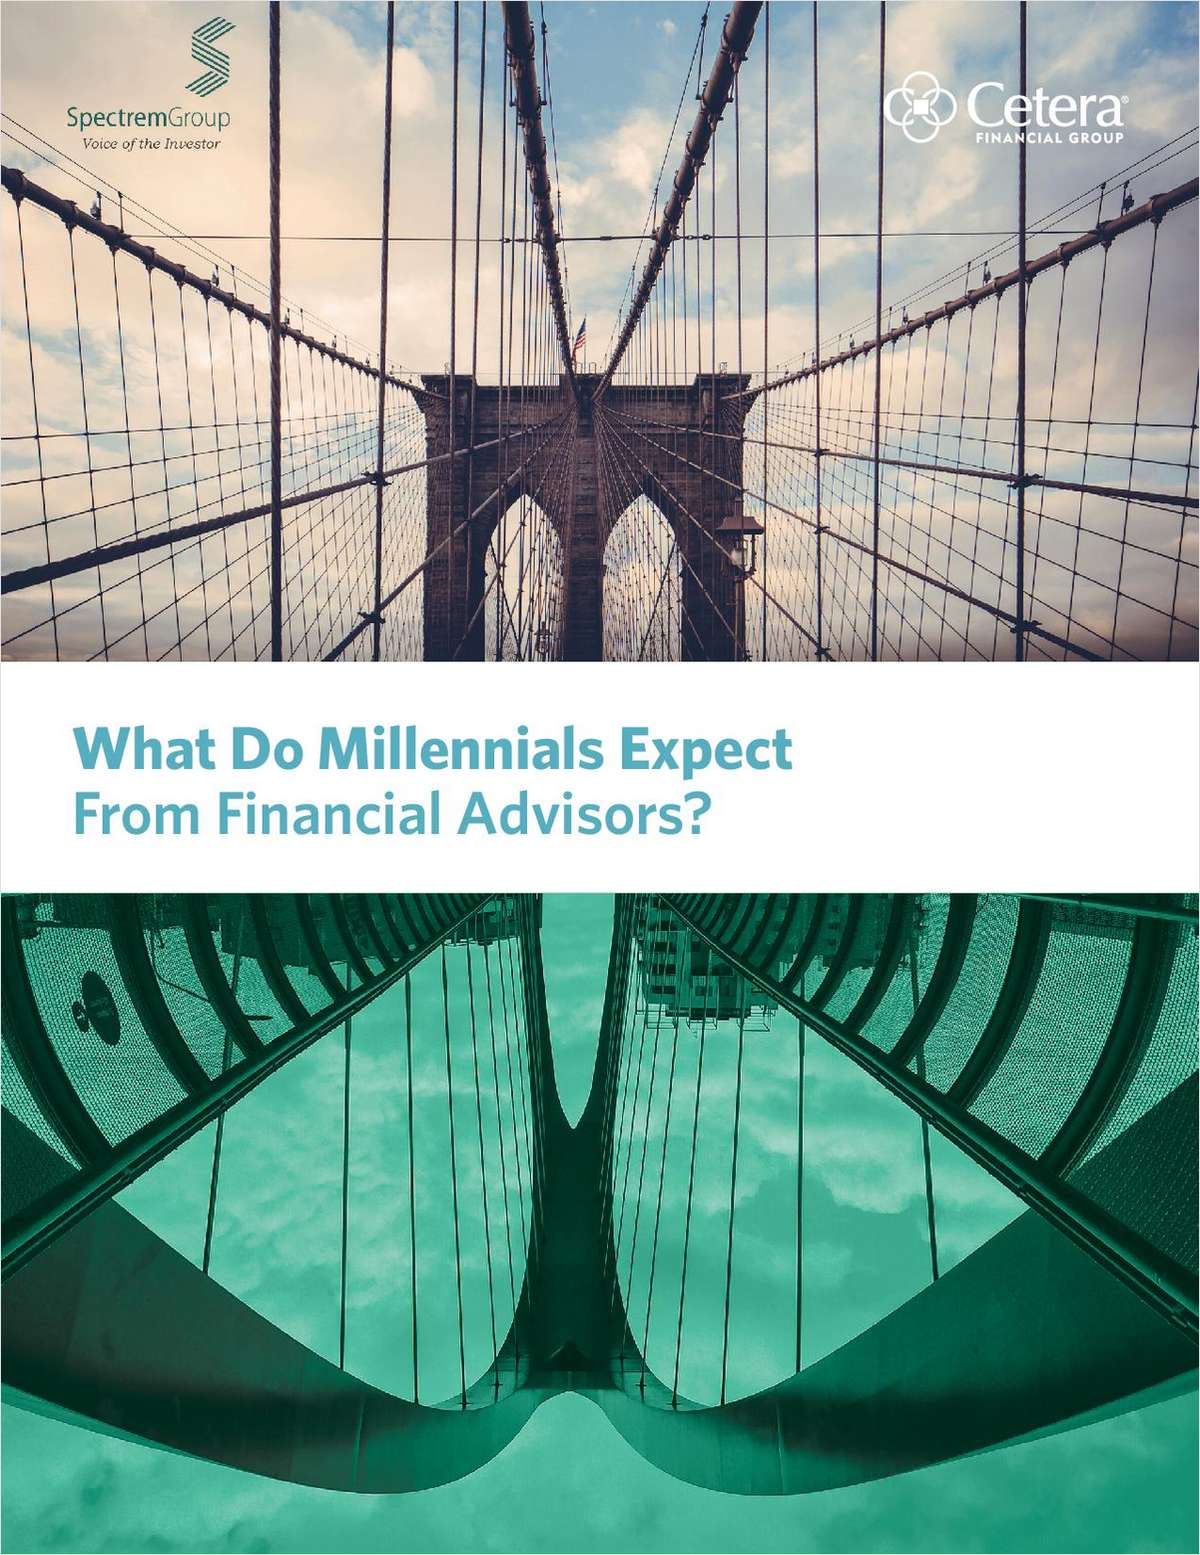 What Do Millennials Expect From Financial Advisors?